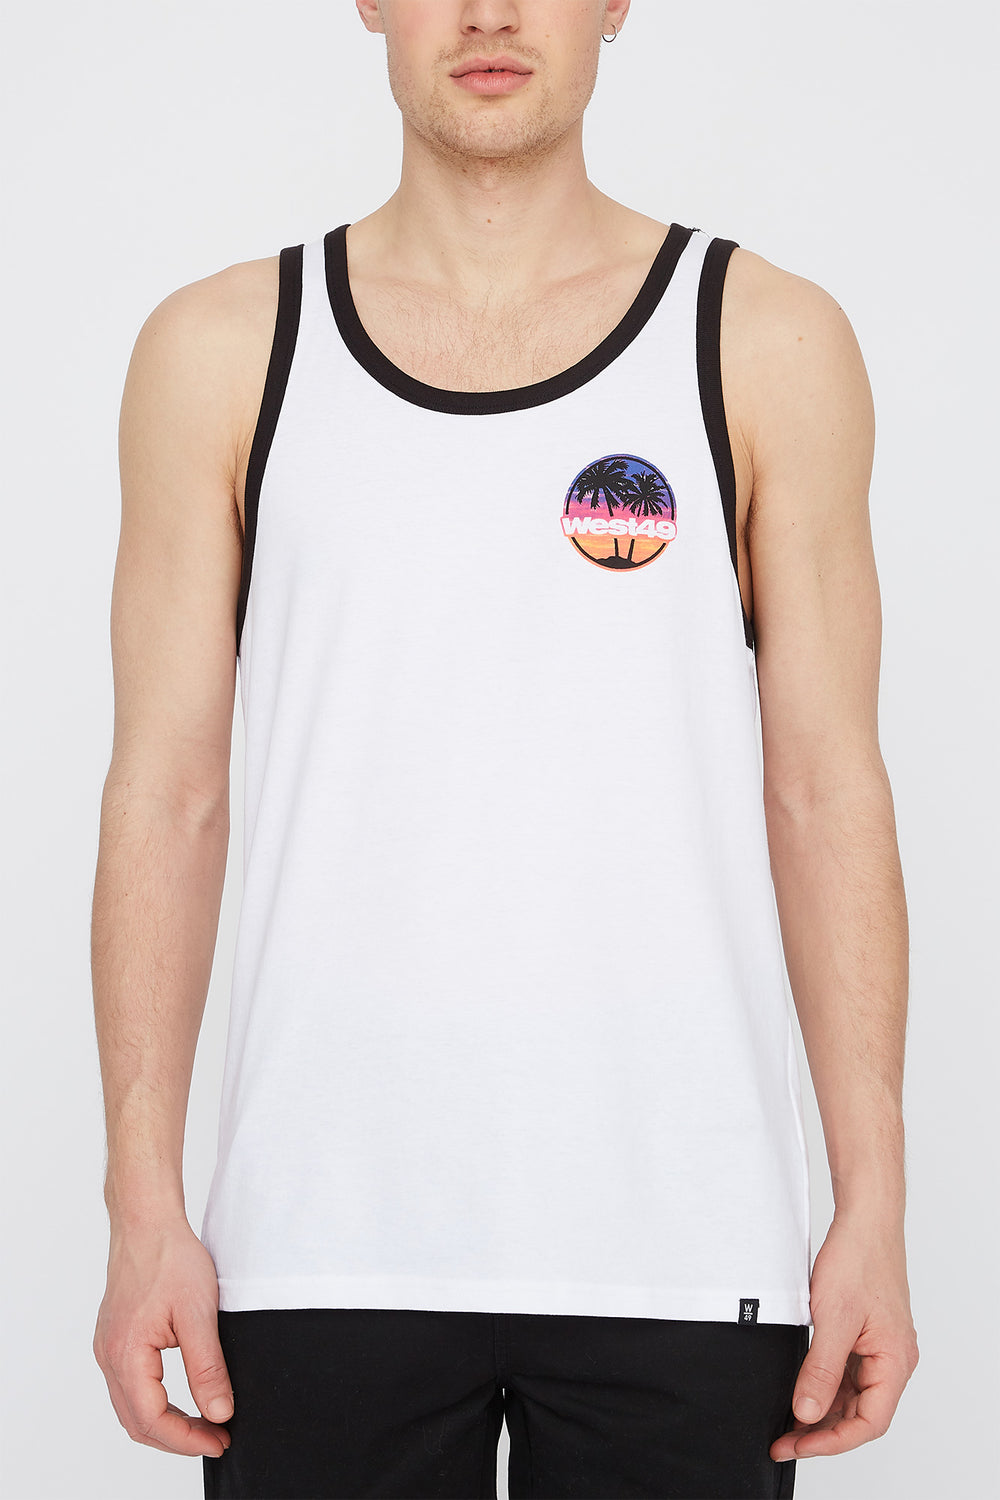 West49 Mens Sunset Logo Tank Top White